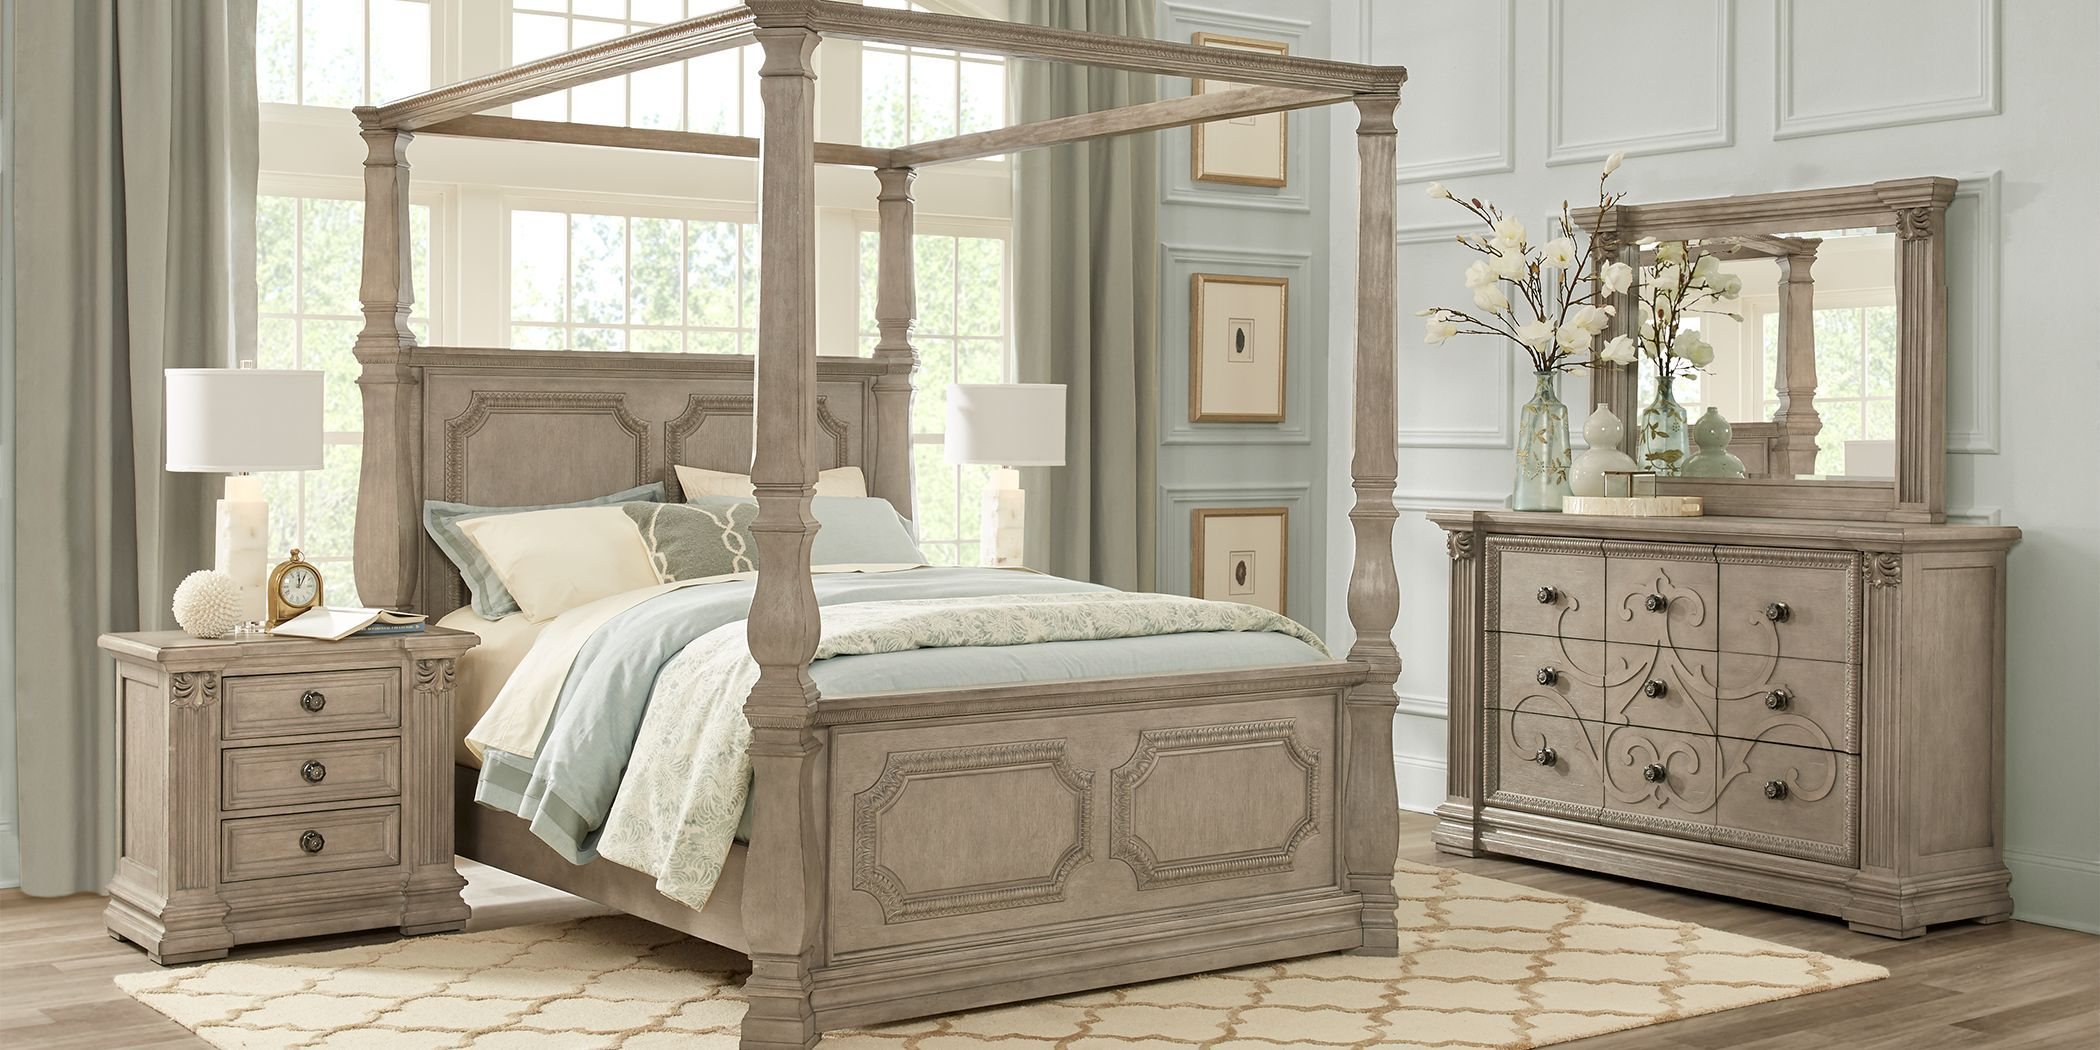 Cassimore Canopy Bedroom Set Signature Design By Ashley Furniturepick